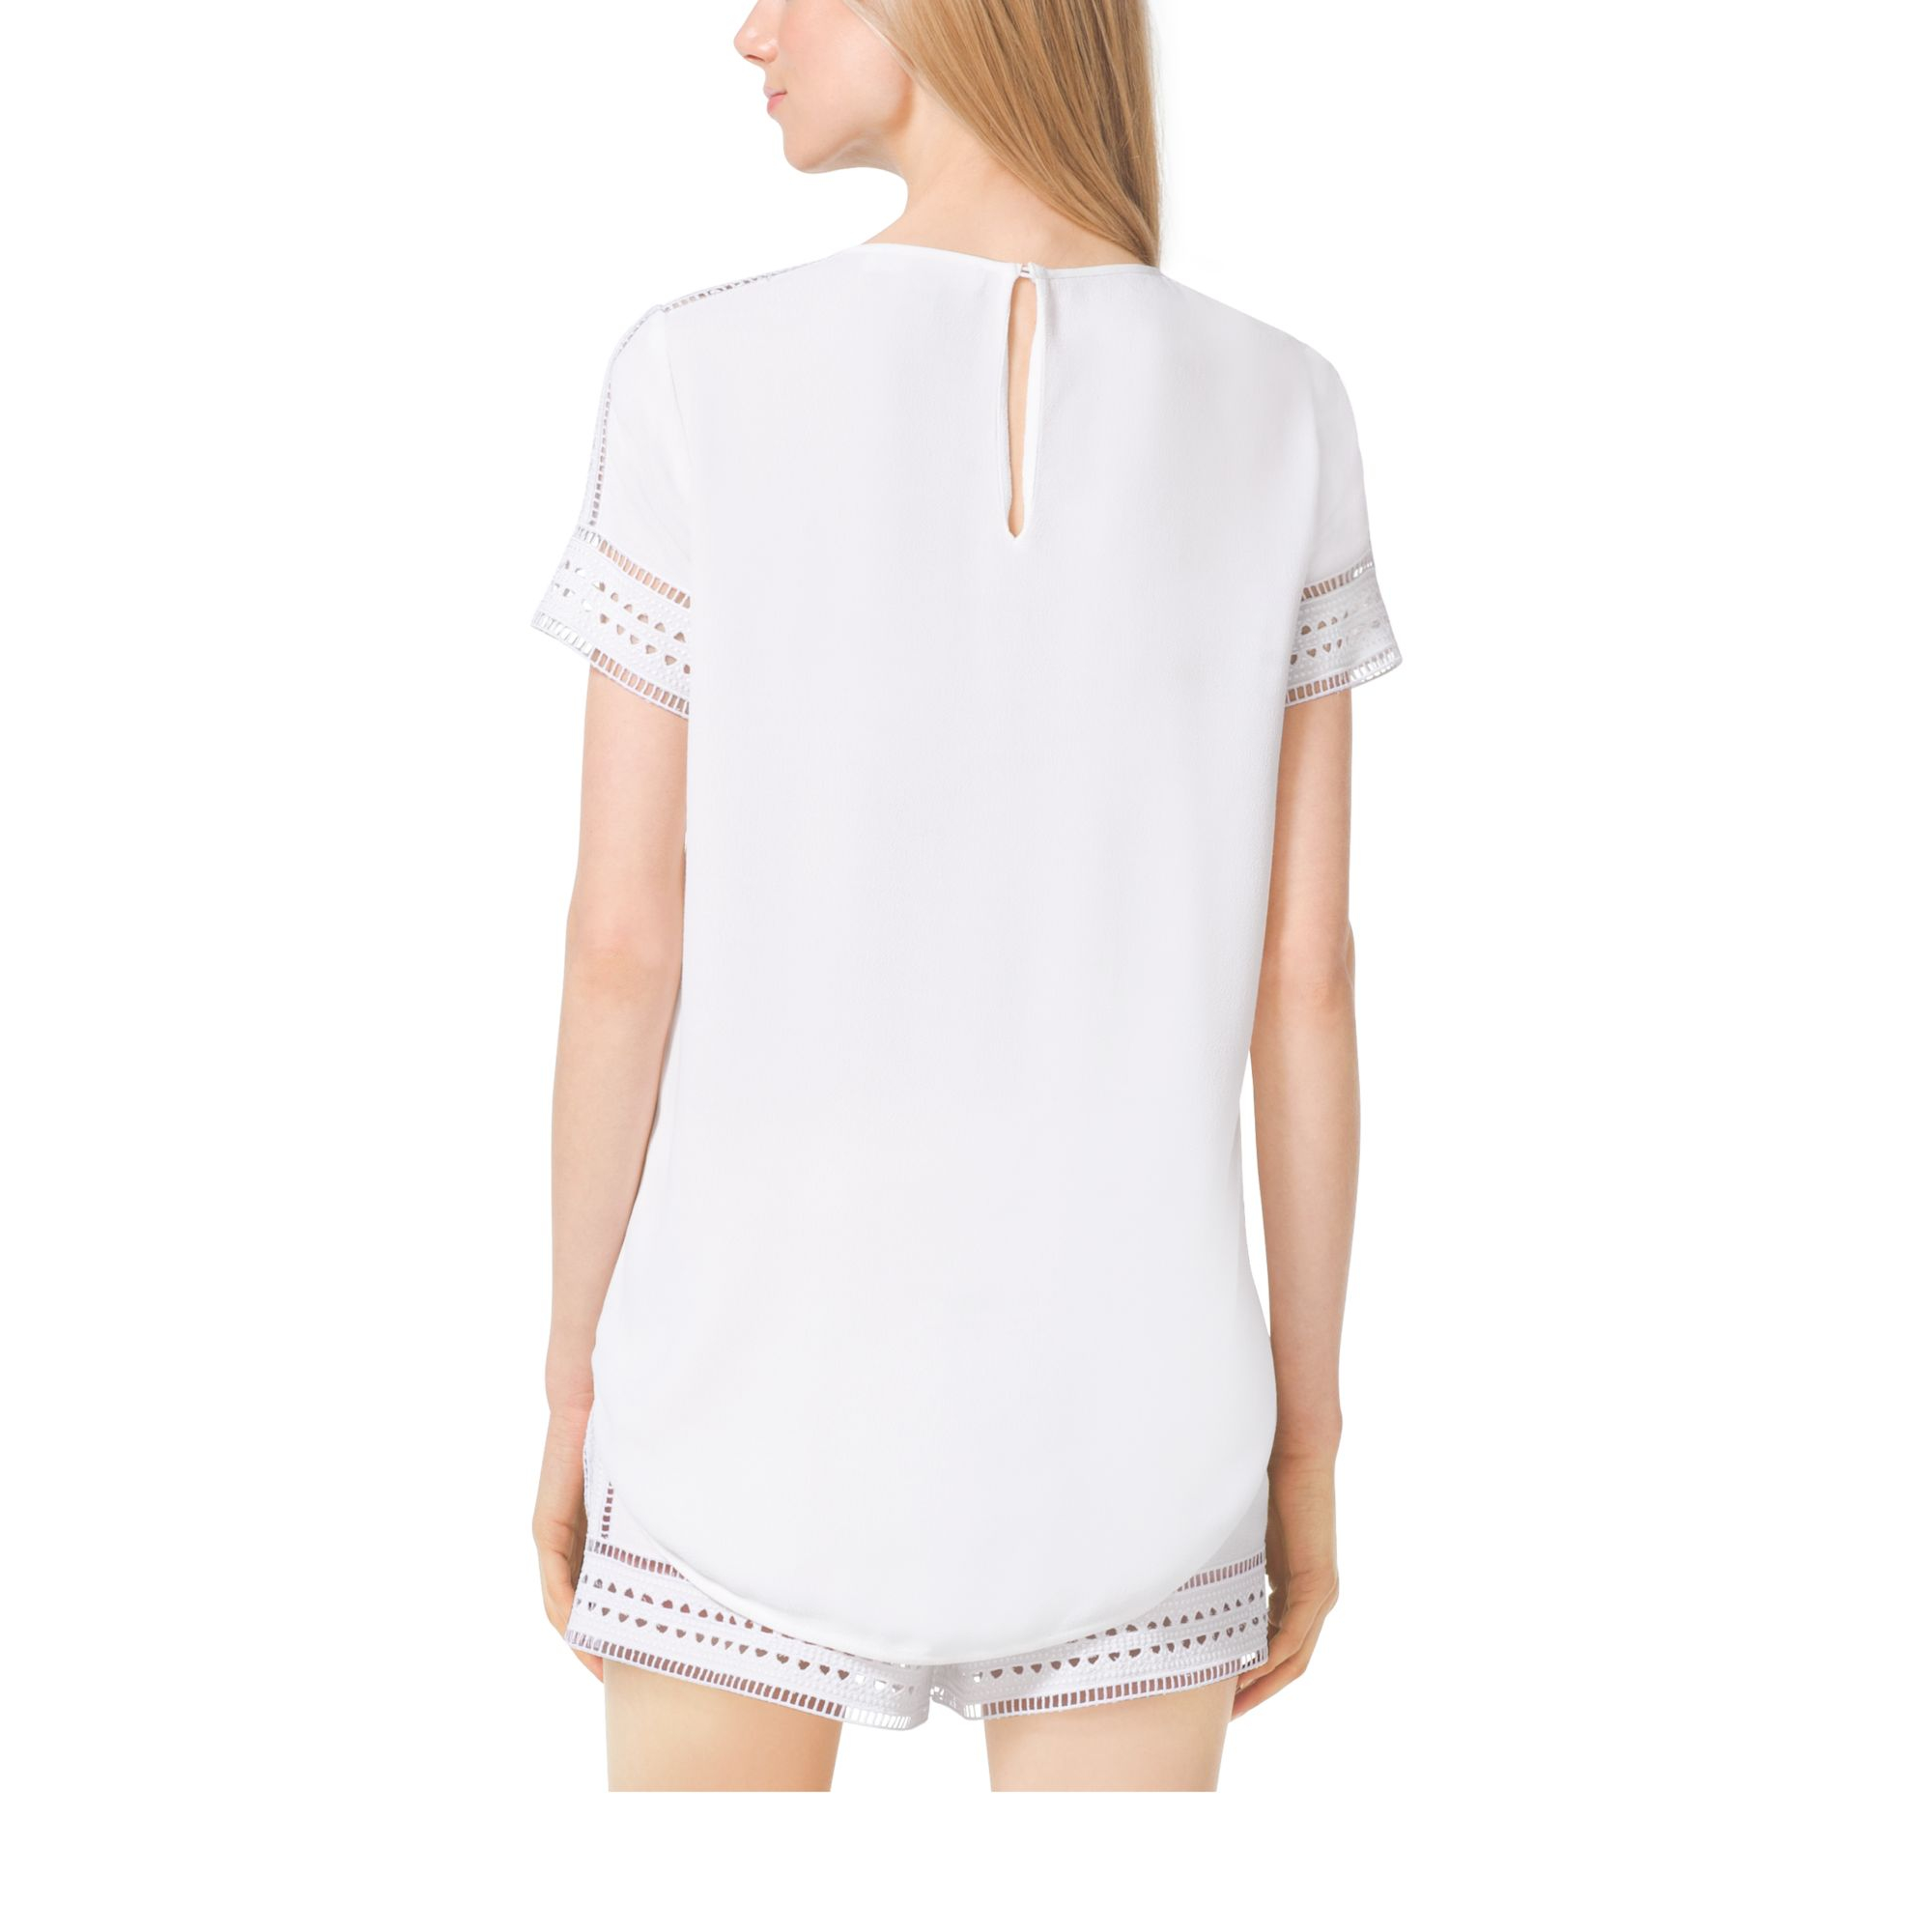 michael kors perforated crepe t shirt in white lyst. Black Bedroom Furniture Sets. Home Design Ideas